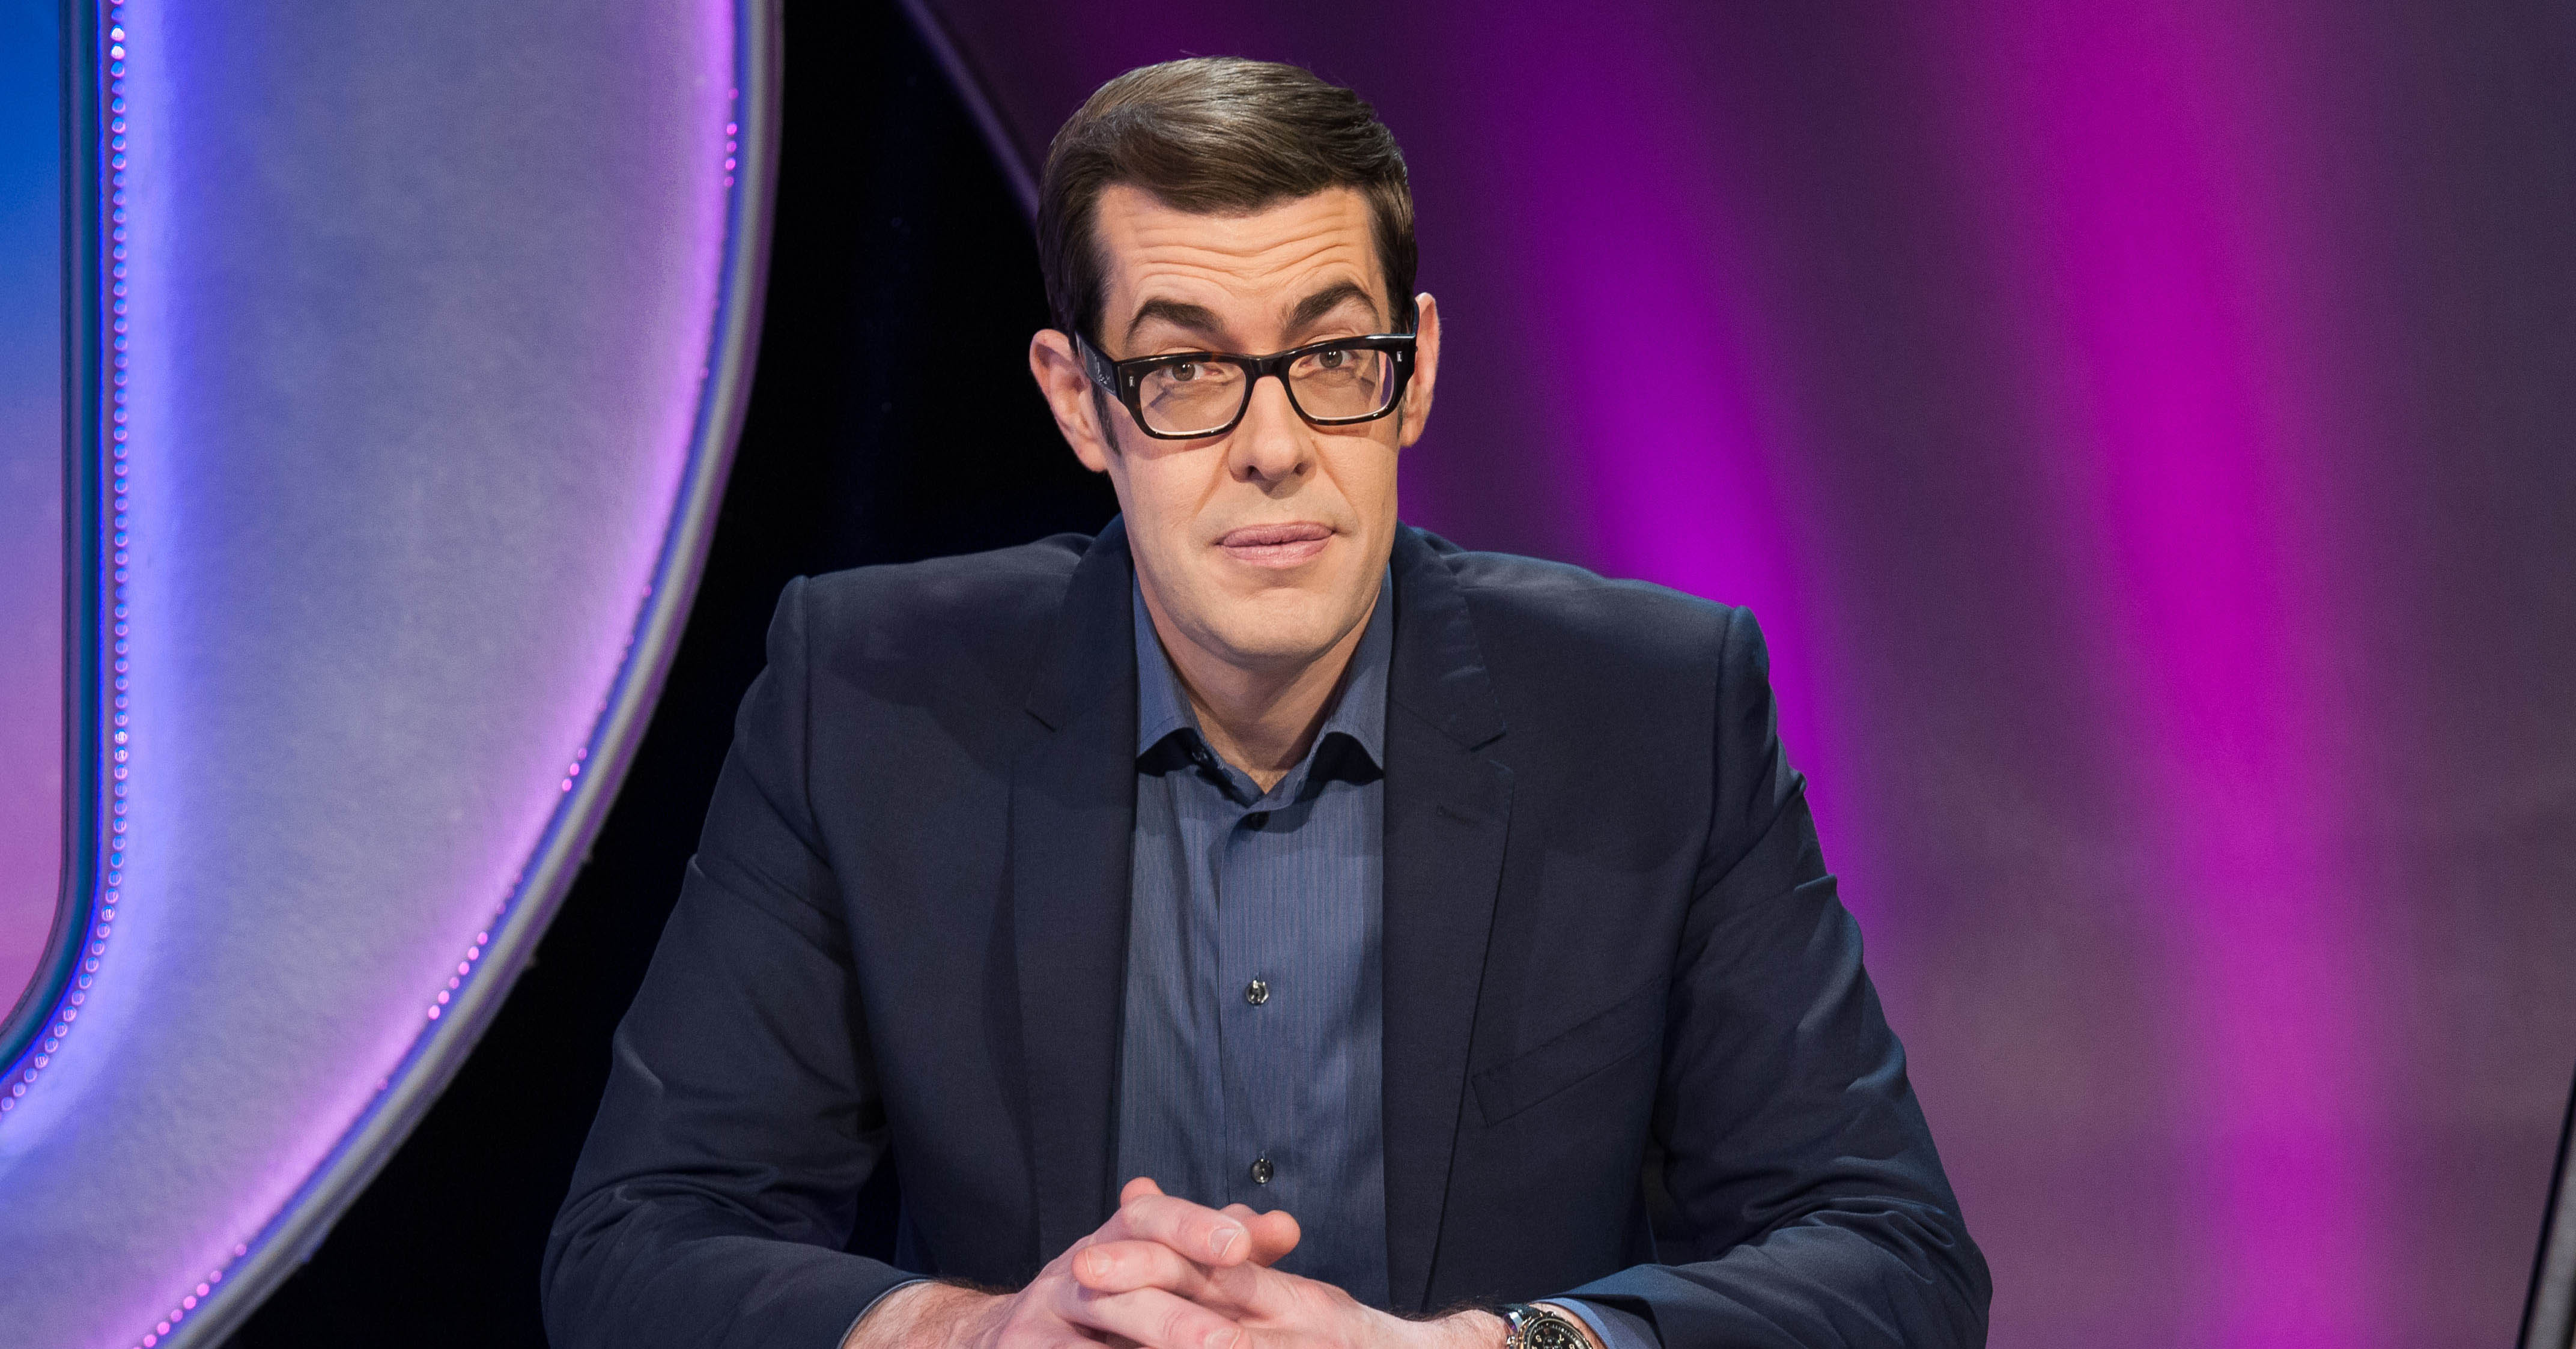 Richard Osman On Drop The Dead Donkey